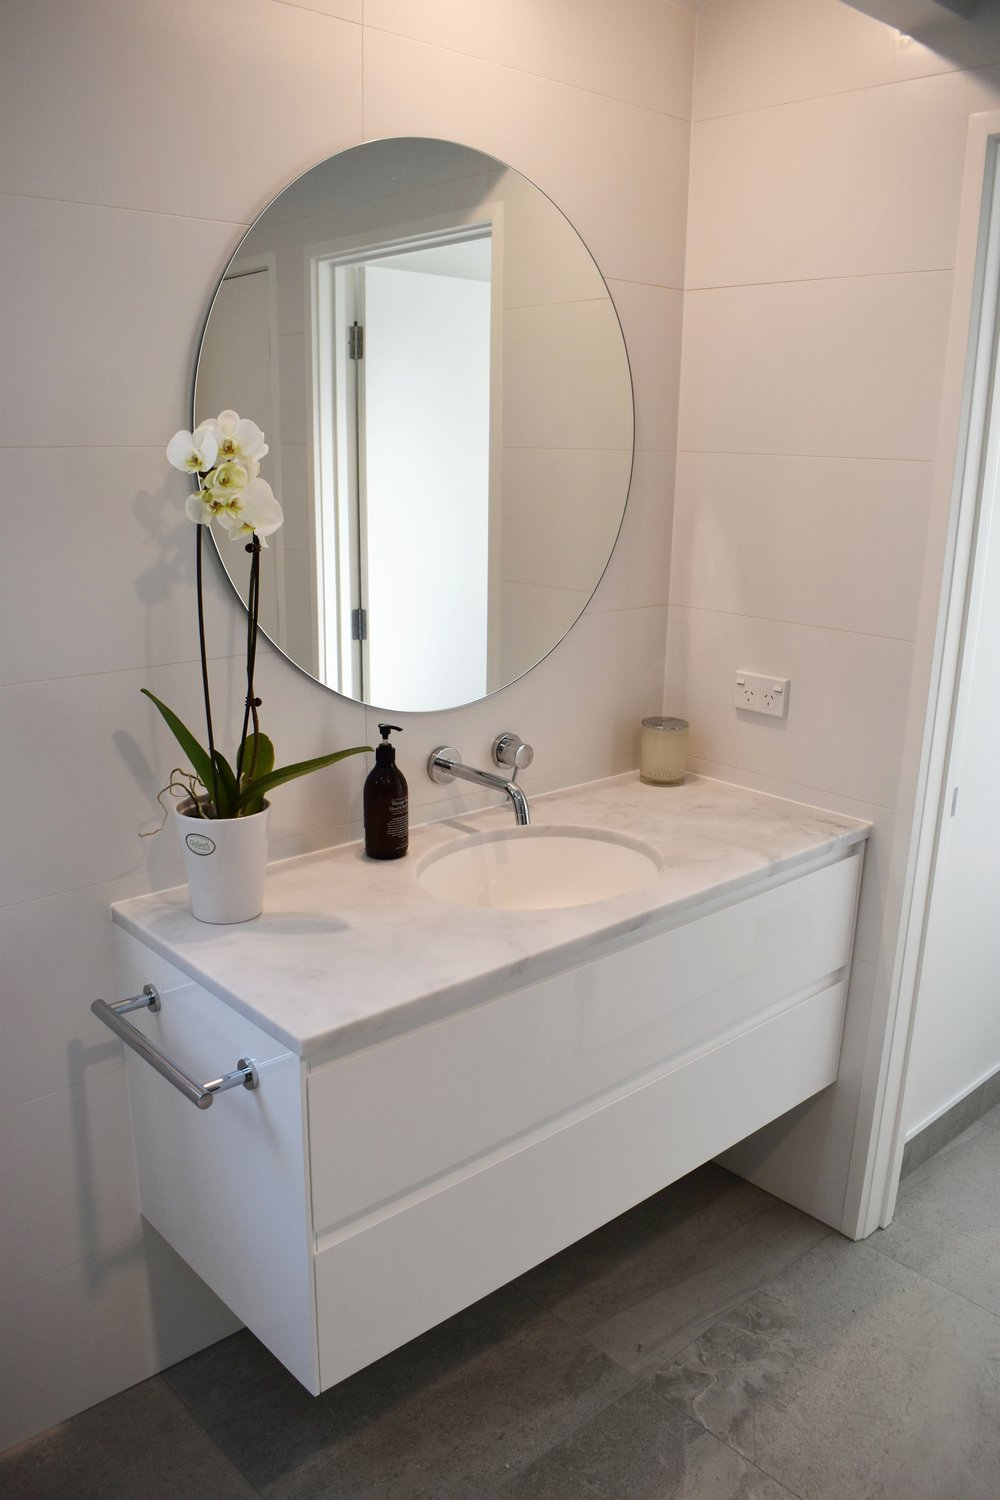 park-rise-bathroom.jpg